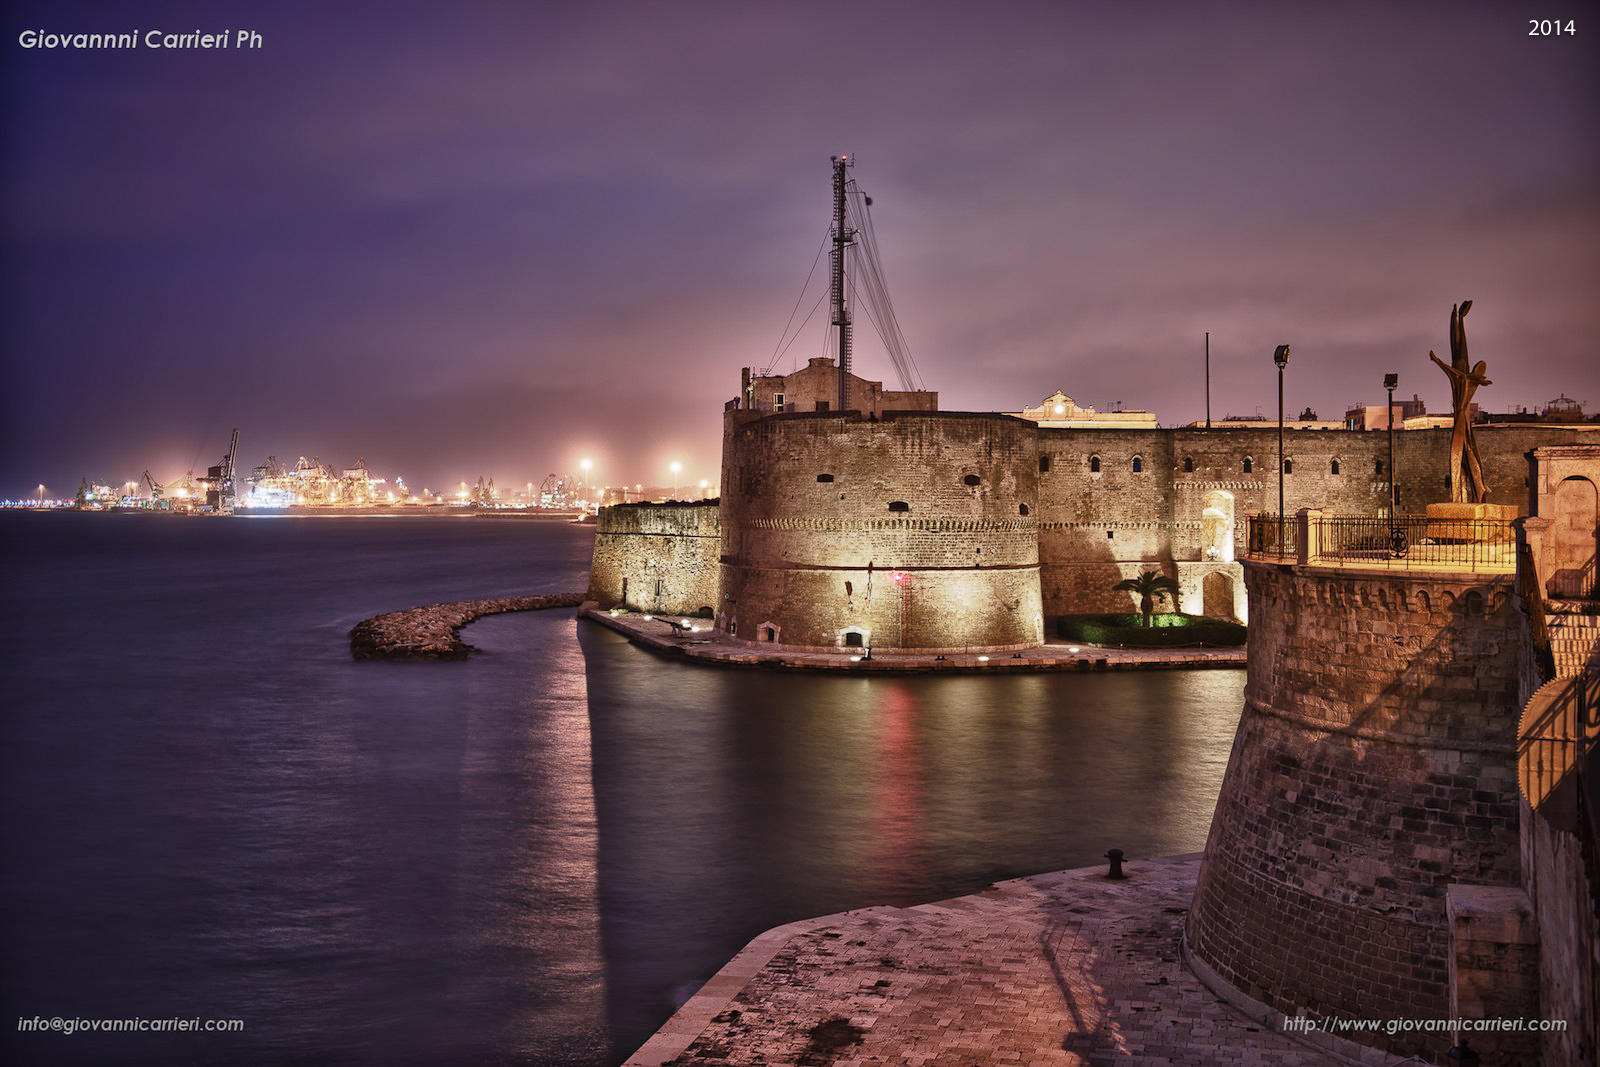 Photographs of Taranto